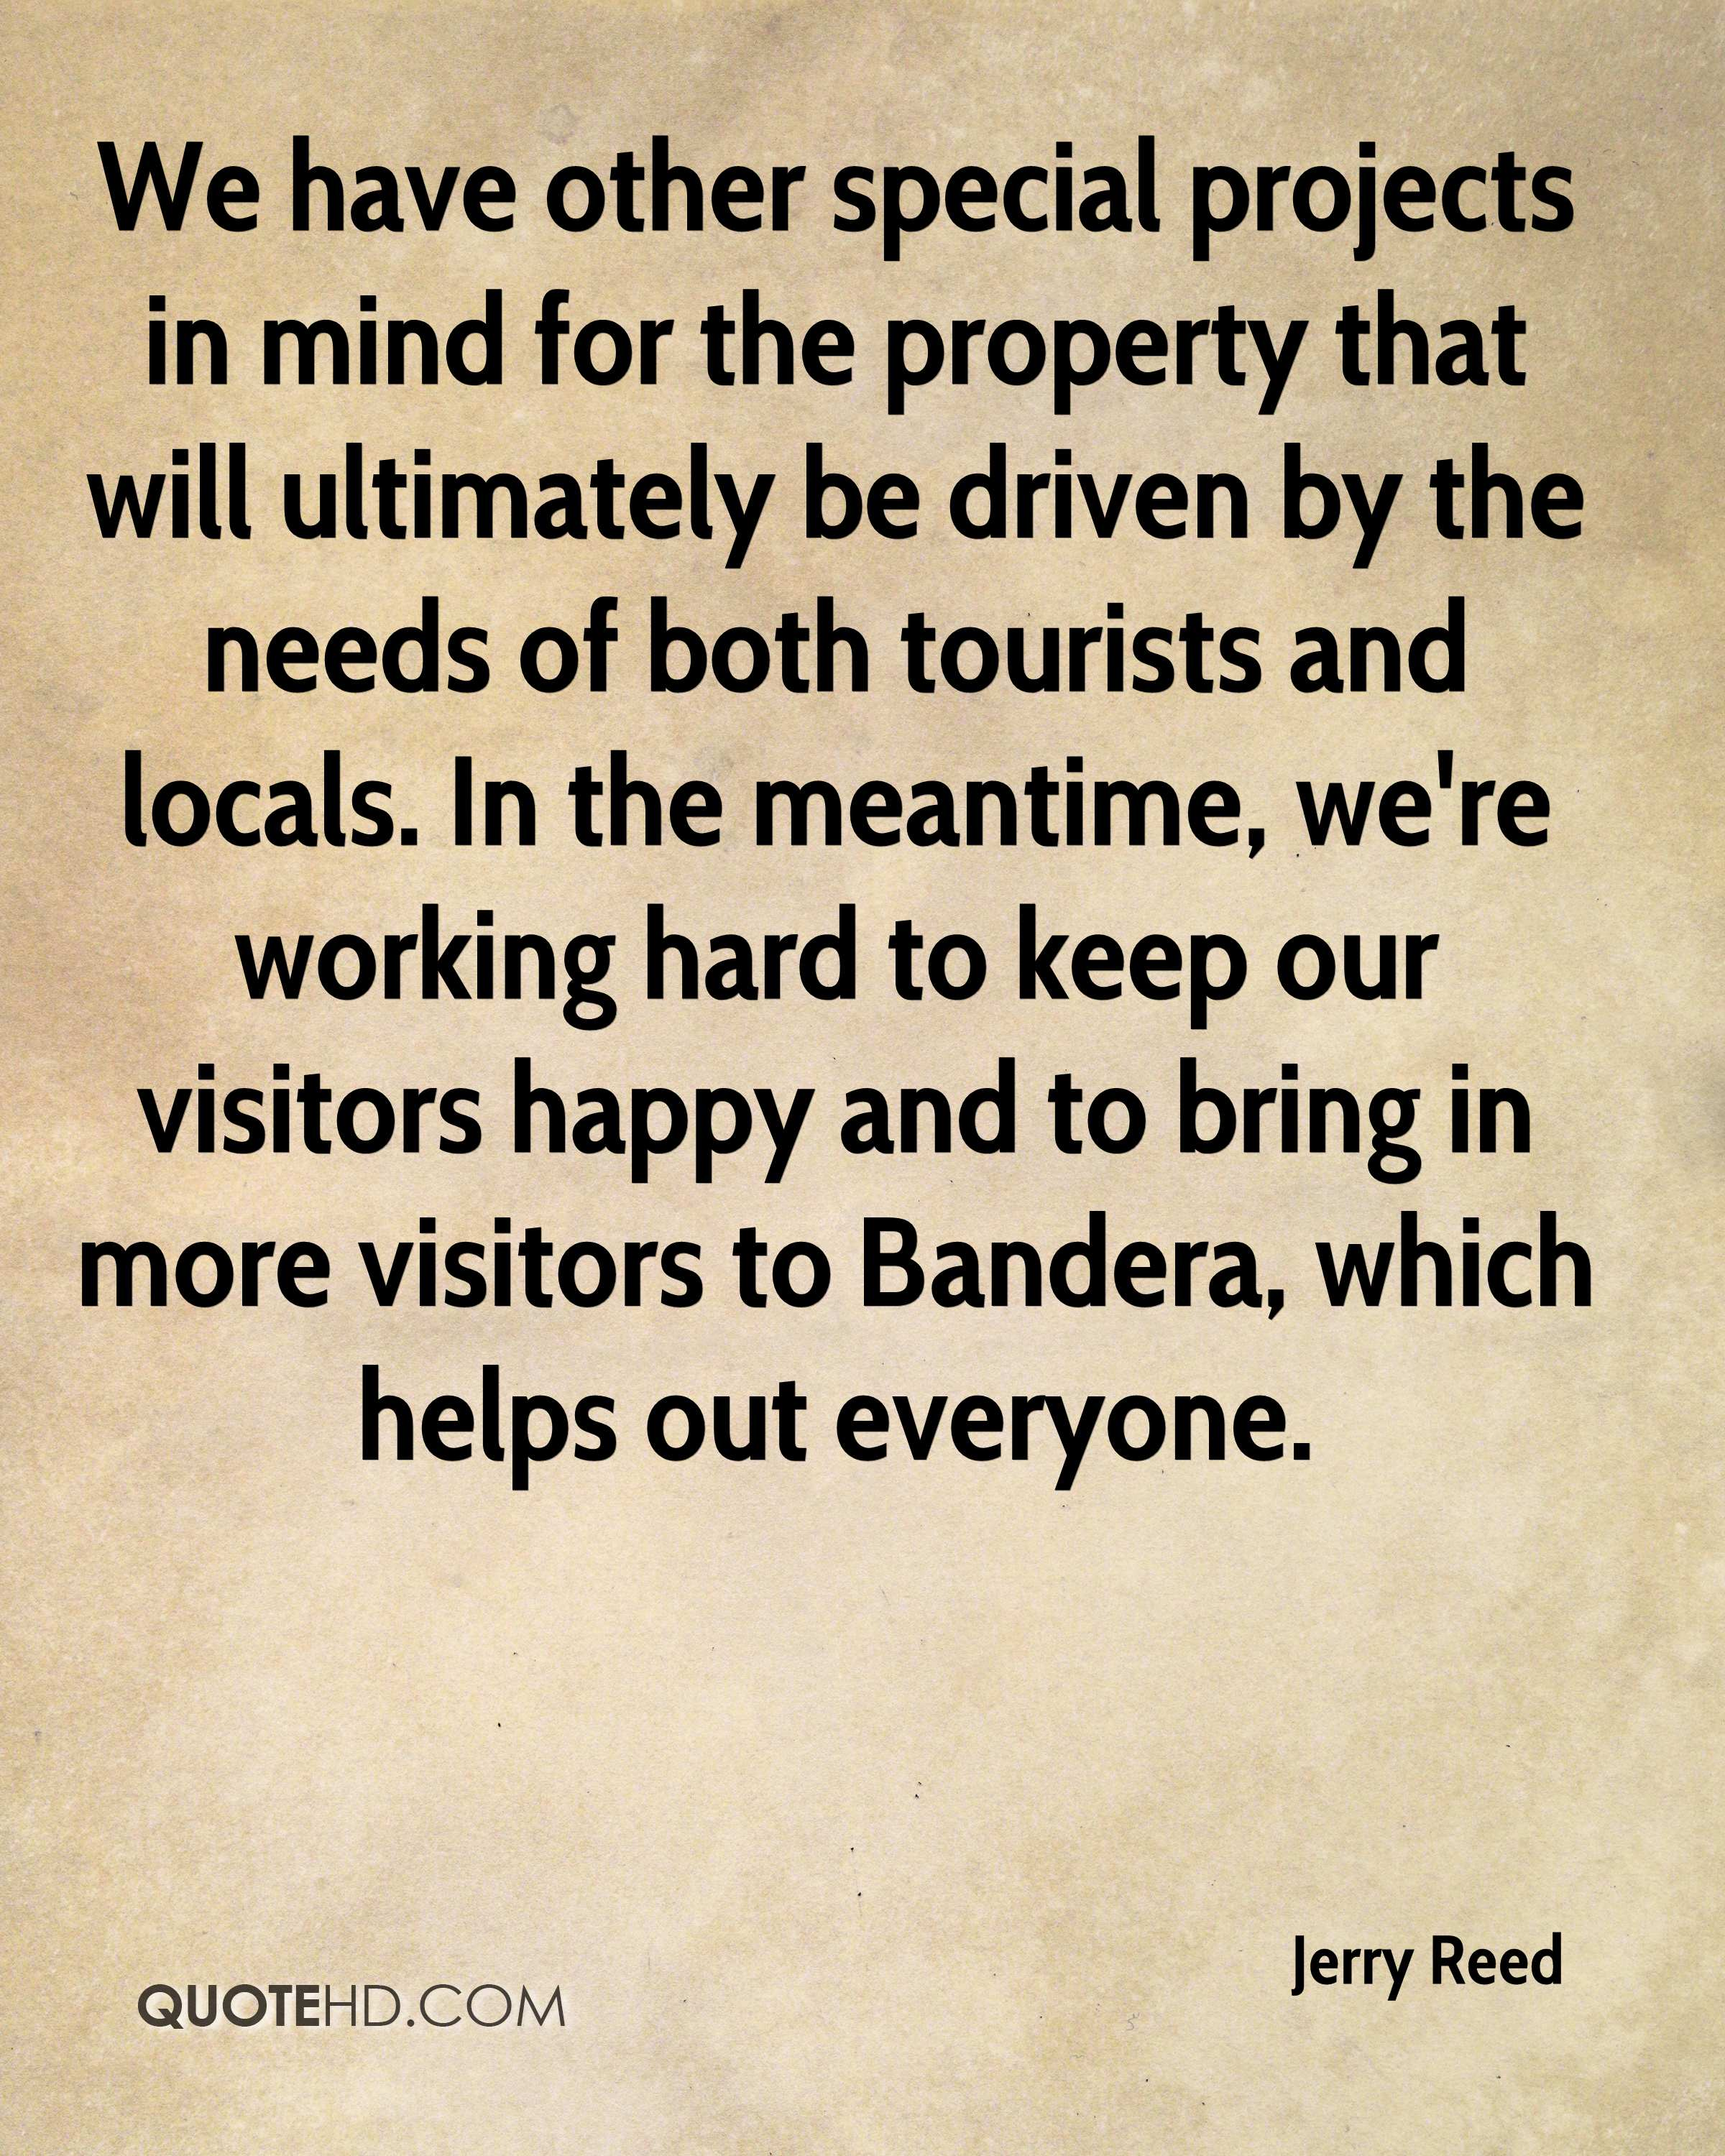 We have other special projects in mind for the property that will ultimately be driven by the needs of both tourists and locals. In the meantime, we're working hard to keep our visitors happy and to bring in more visitors to Bandera, which helps out everyone.